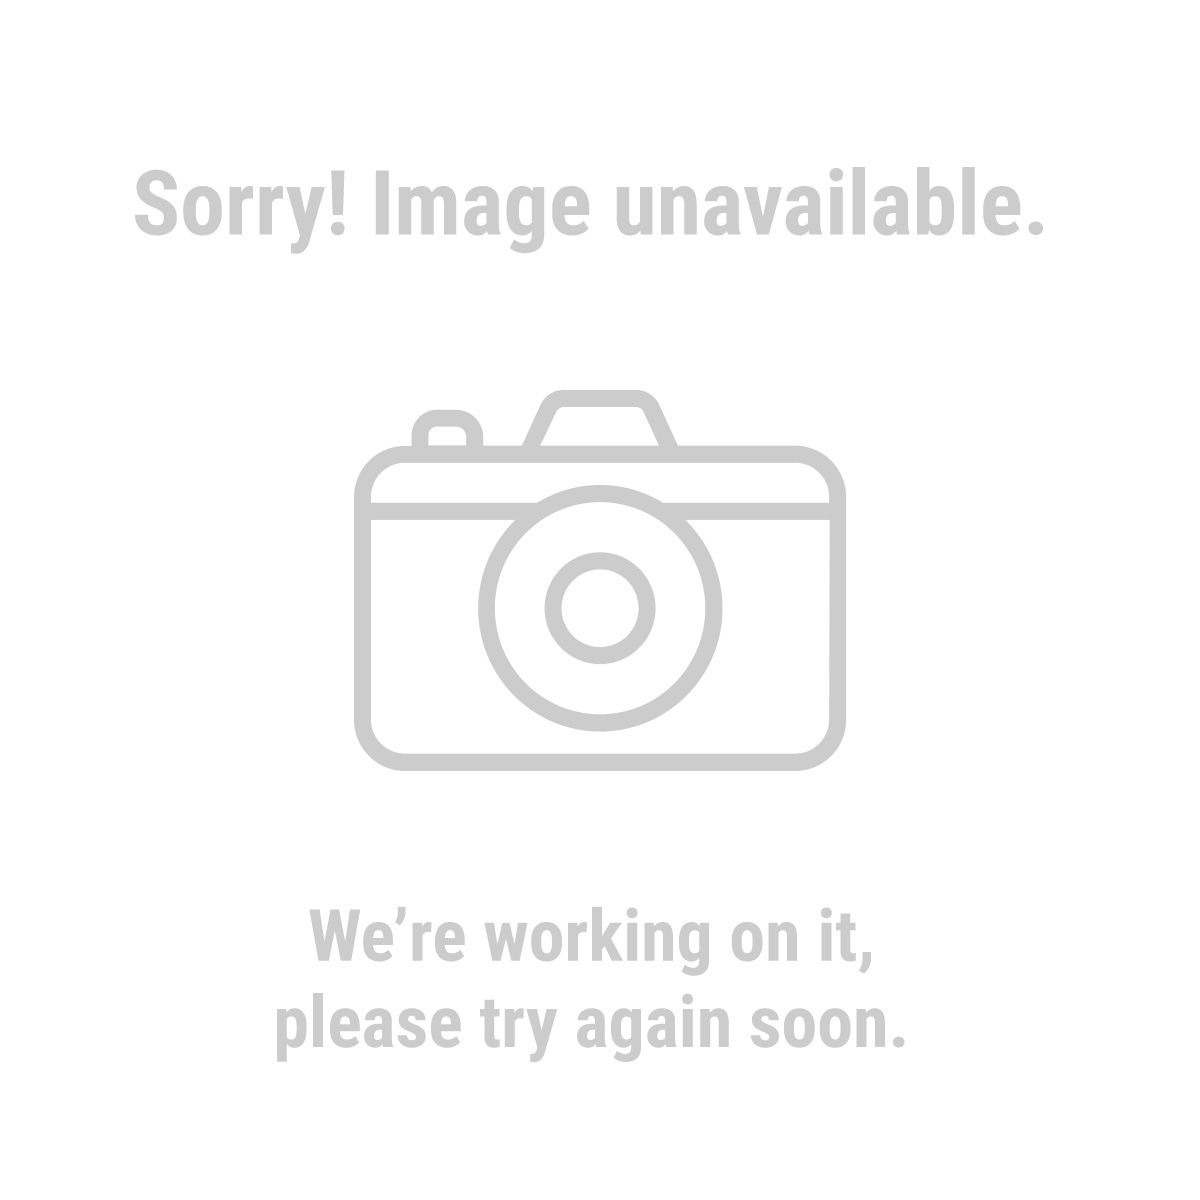 Grant's 63028 Luxe Finish Microfiber Towels 12 Pk.